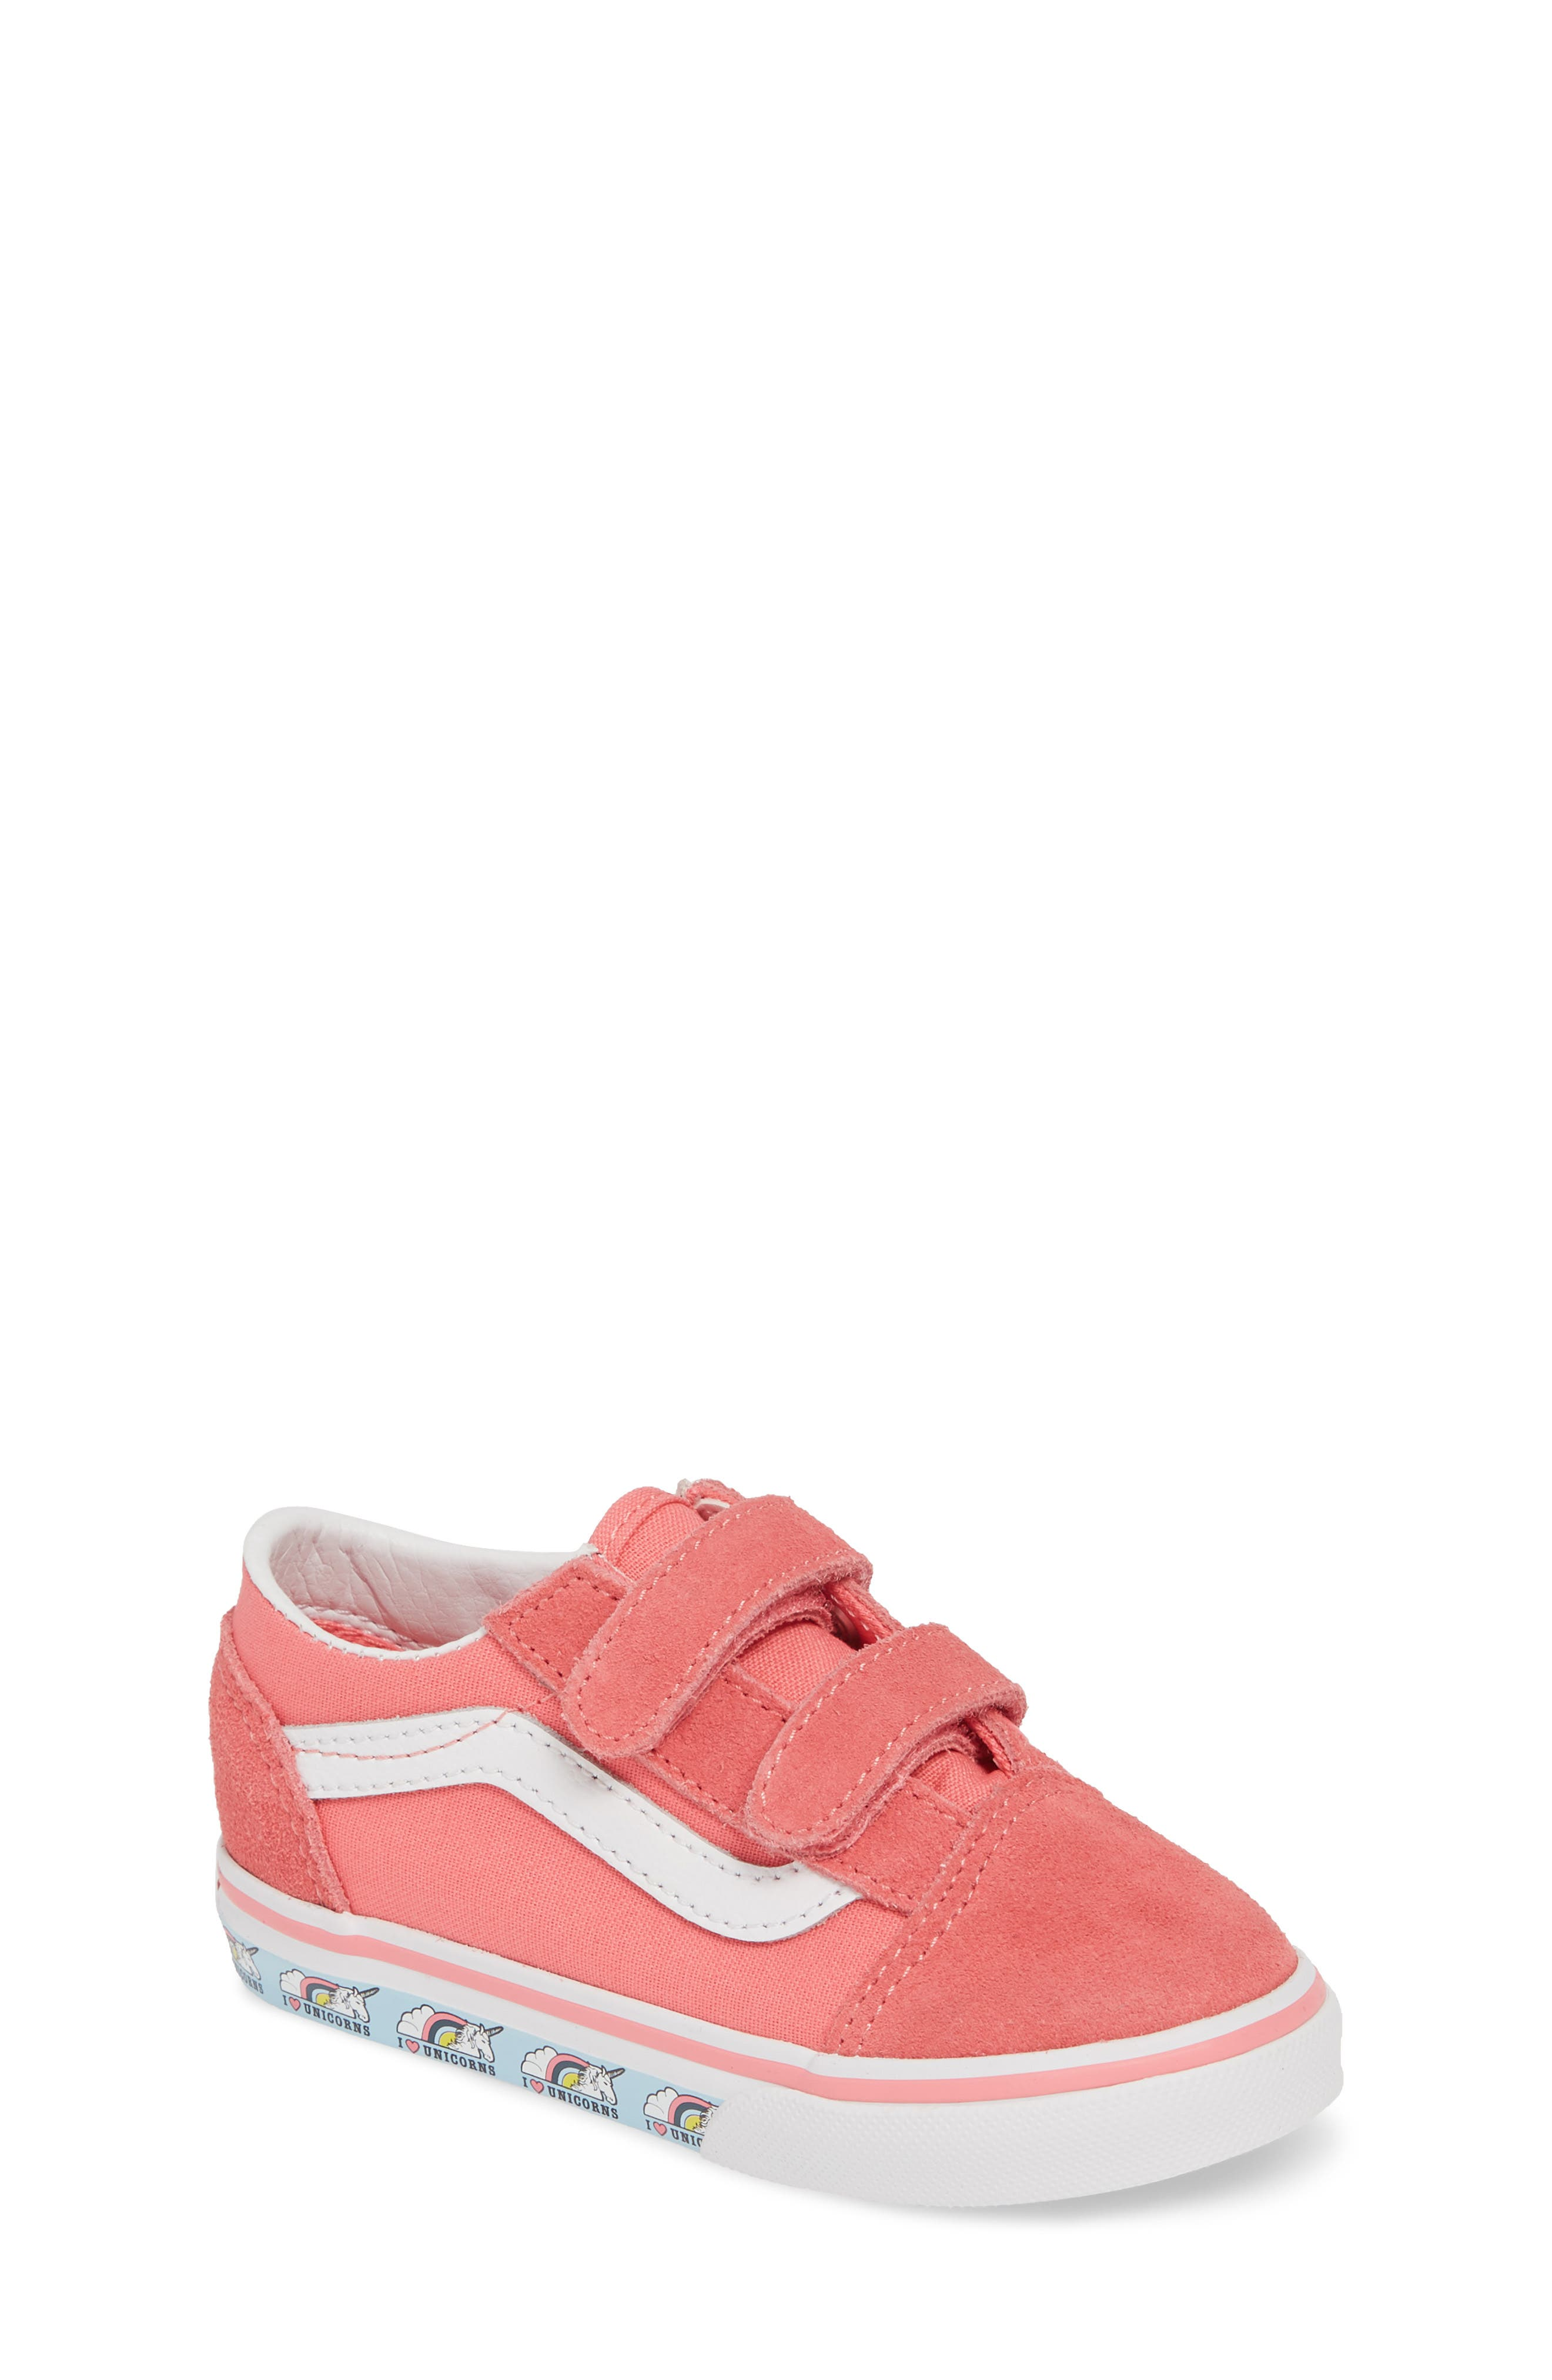 2f46e3d920 Vans girls sneakers athletic shoes kids shoes and boots jpg 2640x4048 Baby girl  vans